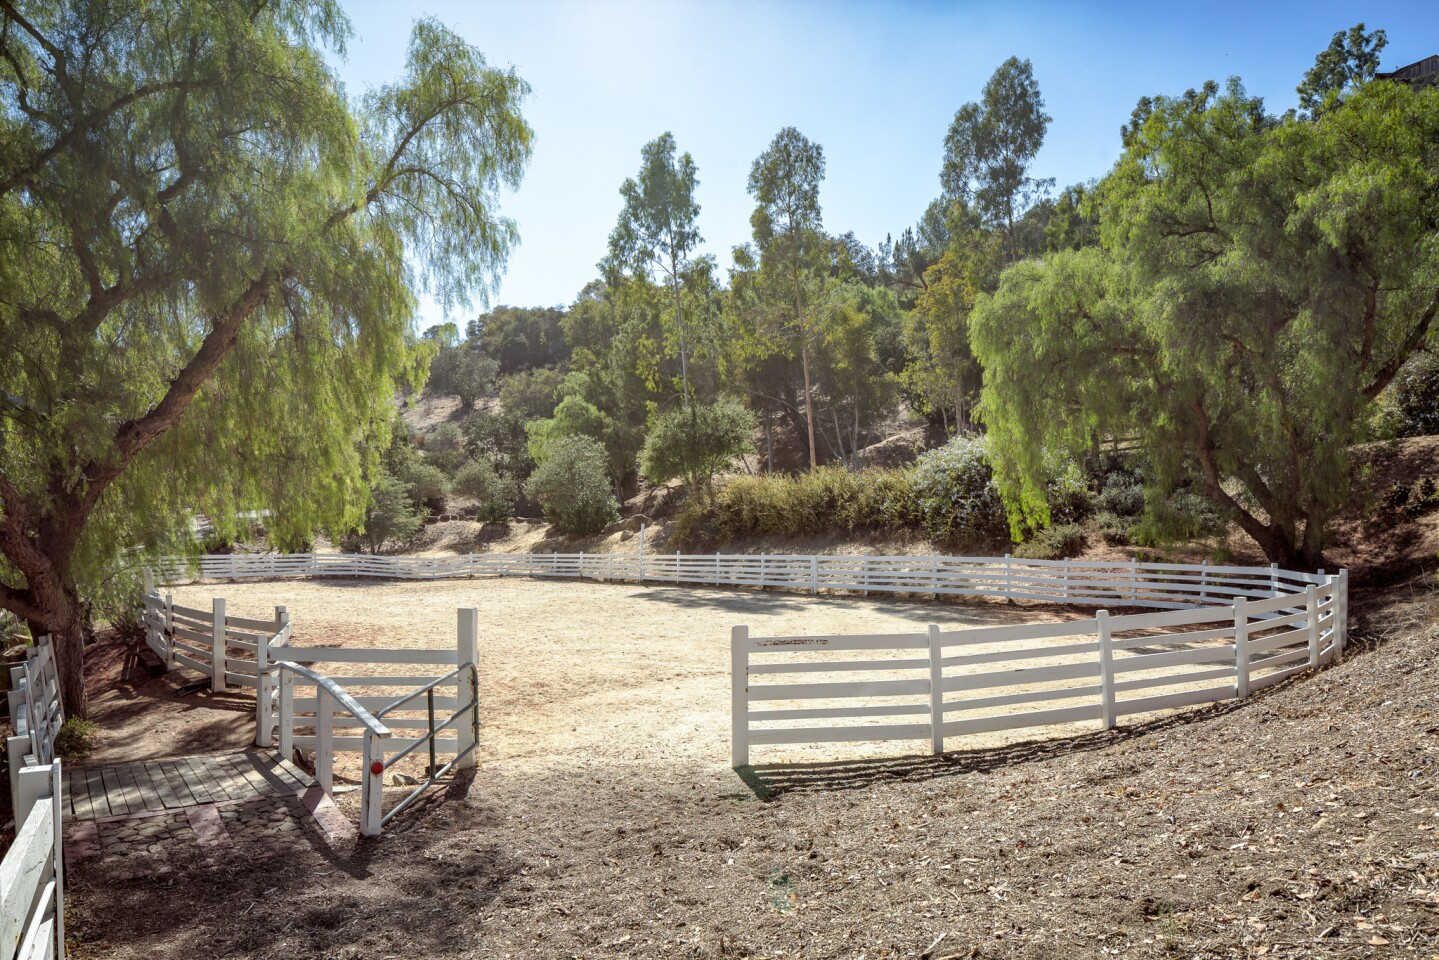 The roughly 30-acre ranch in Topanga features two homes, horse facilities, orchards and organic gardens.